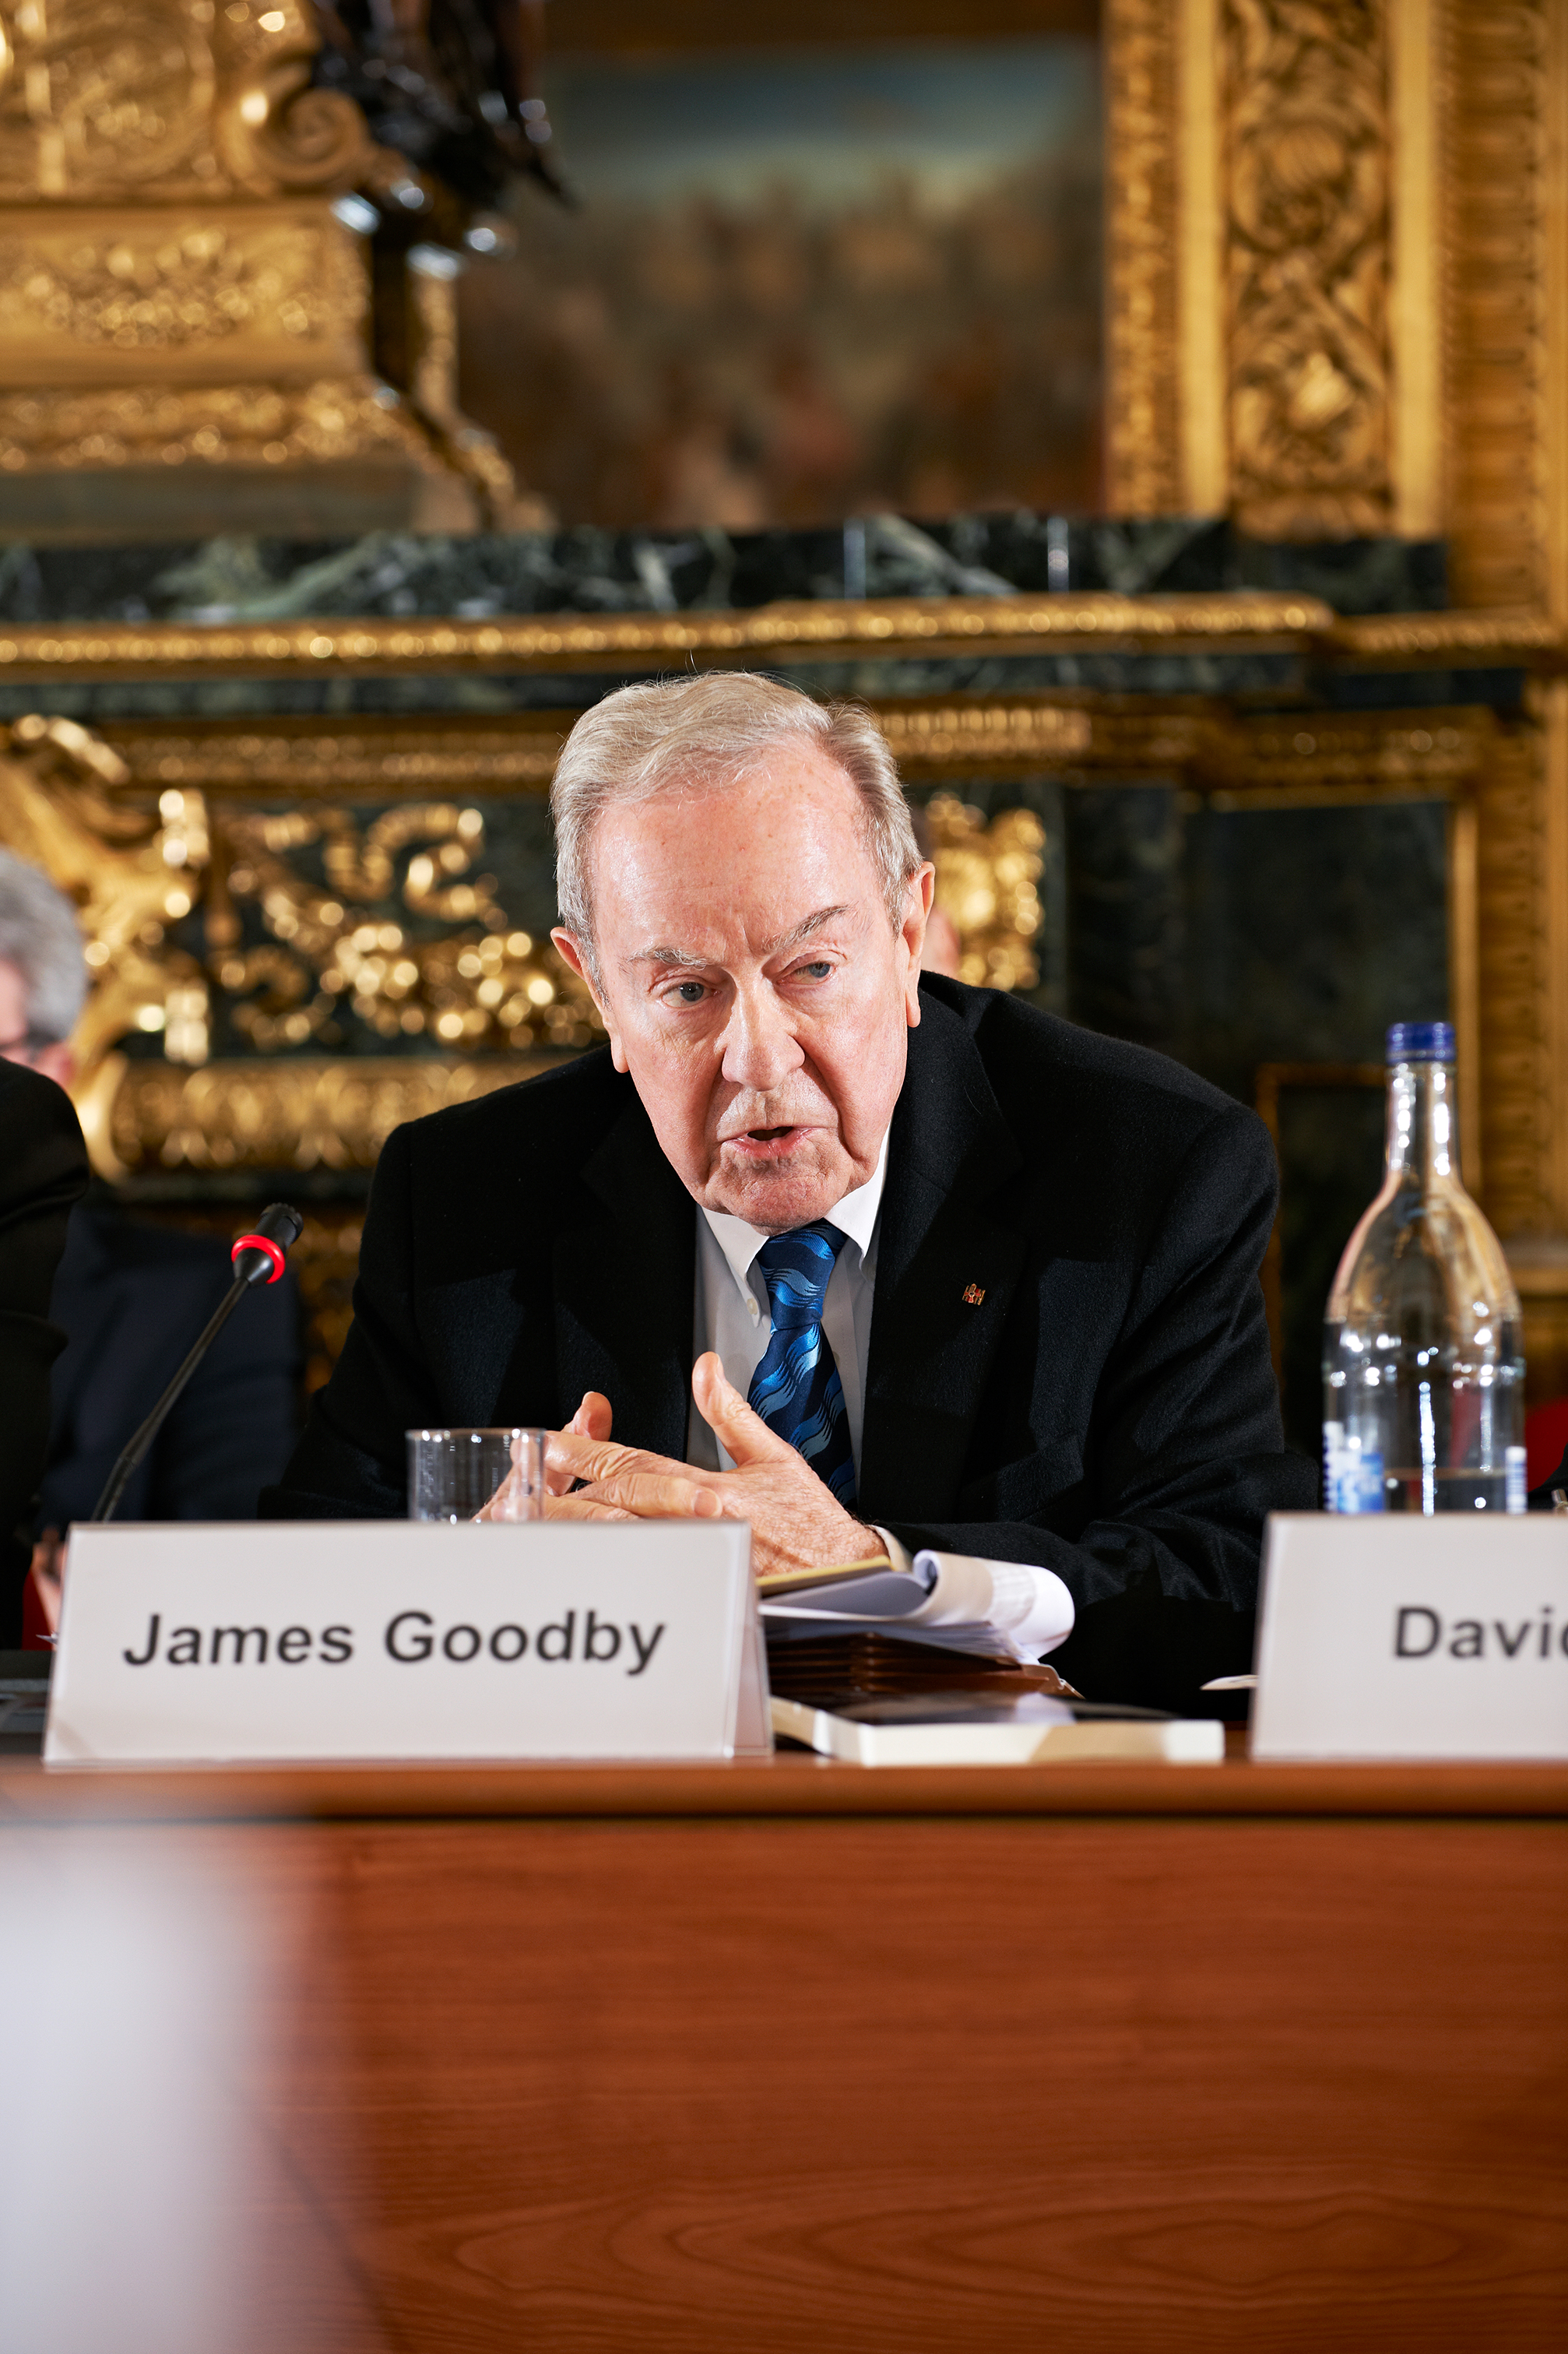 James Goodby